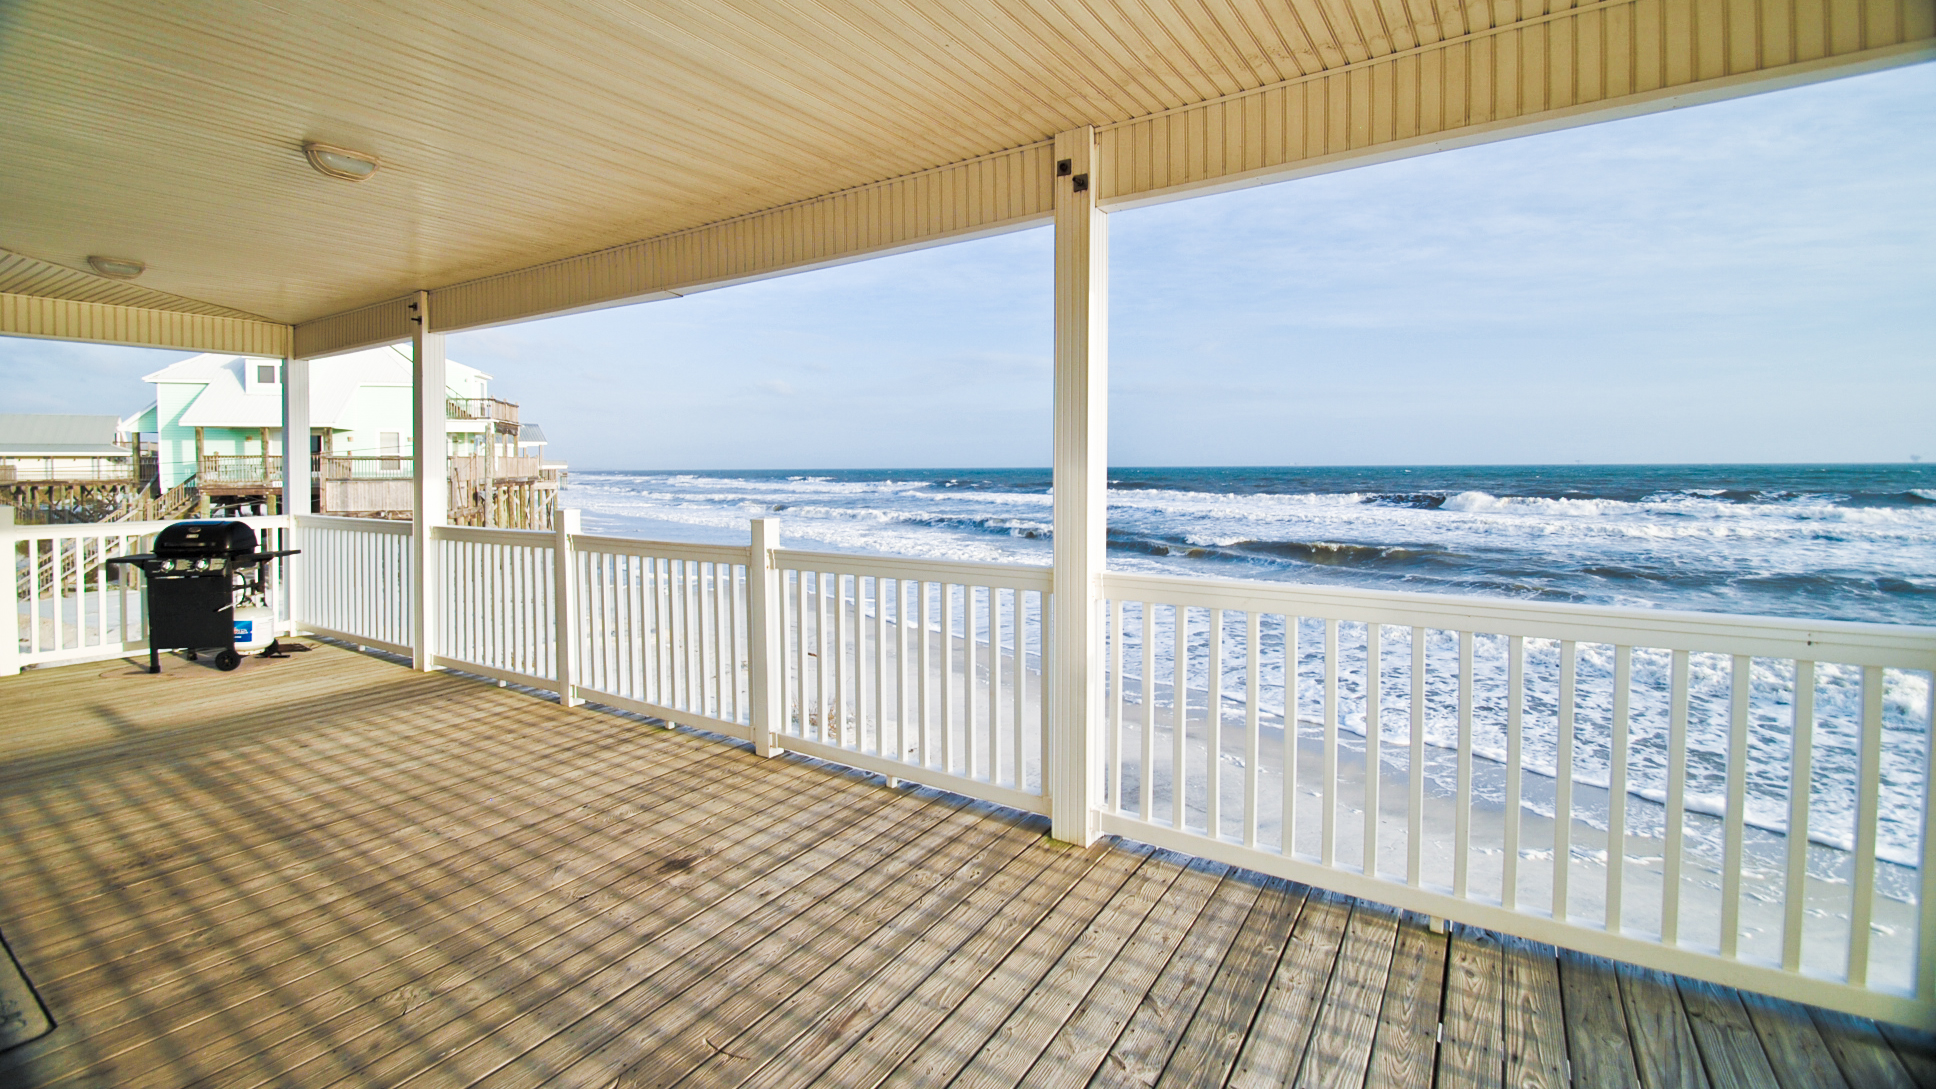 View from the porch of a Dauphin Island vacation rental beach house